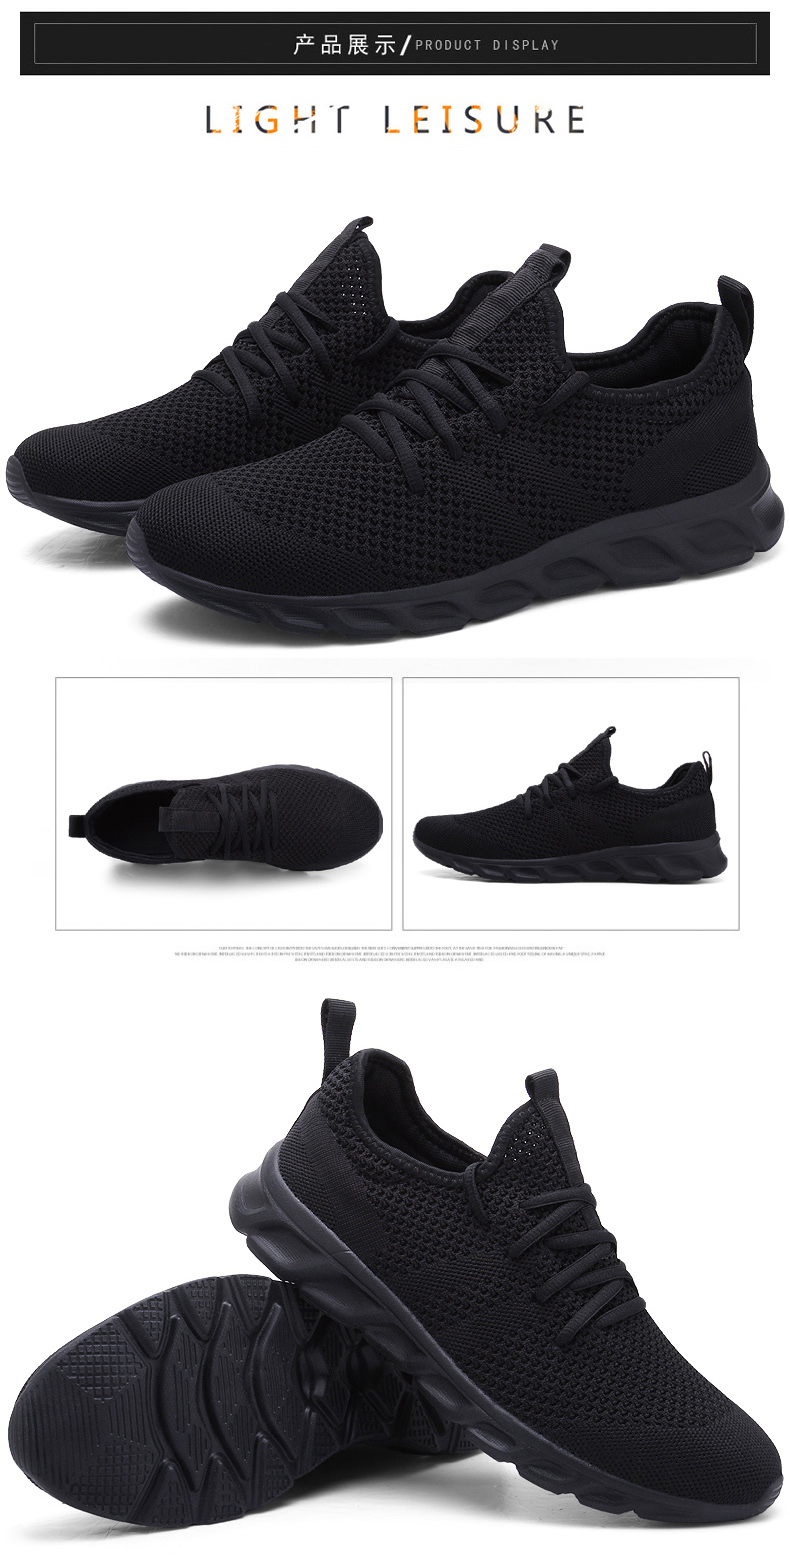 H22c0aaf15d06425cb45b3a025247a9e7T Men Light Running Shoes Flyknit Breathable Lace-Up Jogging Shoes for Man Sneakers Anti-Odor Men's Casual Shoes Drop Shipping